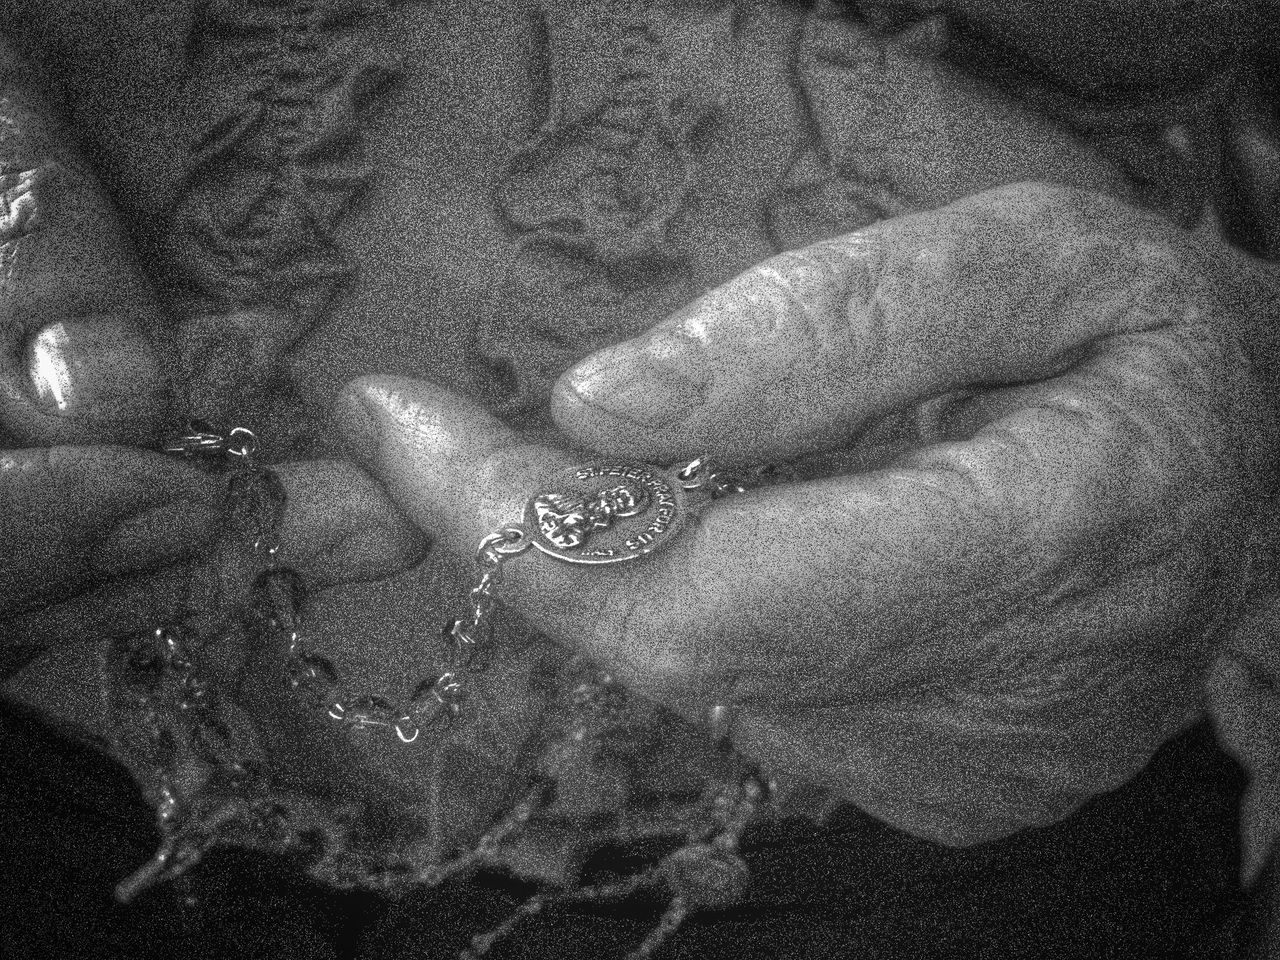 Black And White Photography Catholic Close-up Day Detail Hands Holding Rosary Be Lifestyles Nature Old Buildings Part Of Praying Religious  Rosary Beads